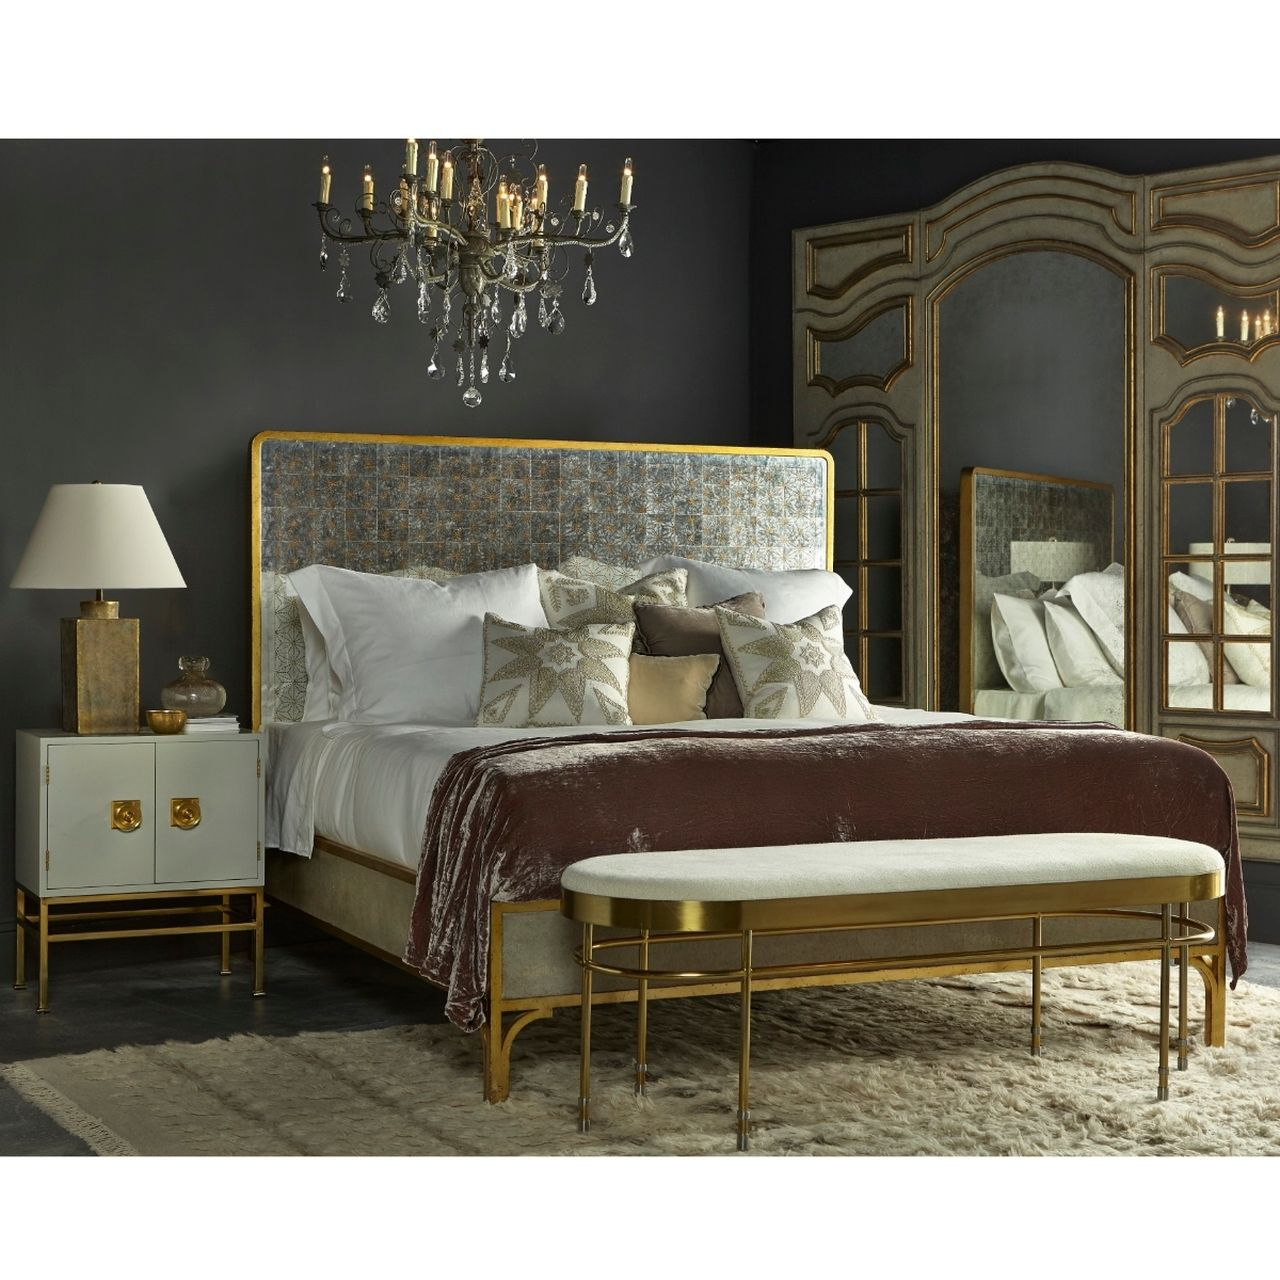 Gilded Star Mirror + Gold Metal Queen Bed Frame